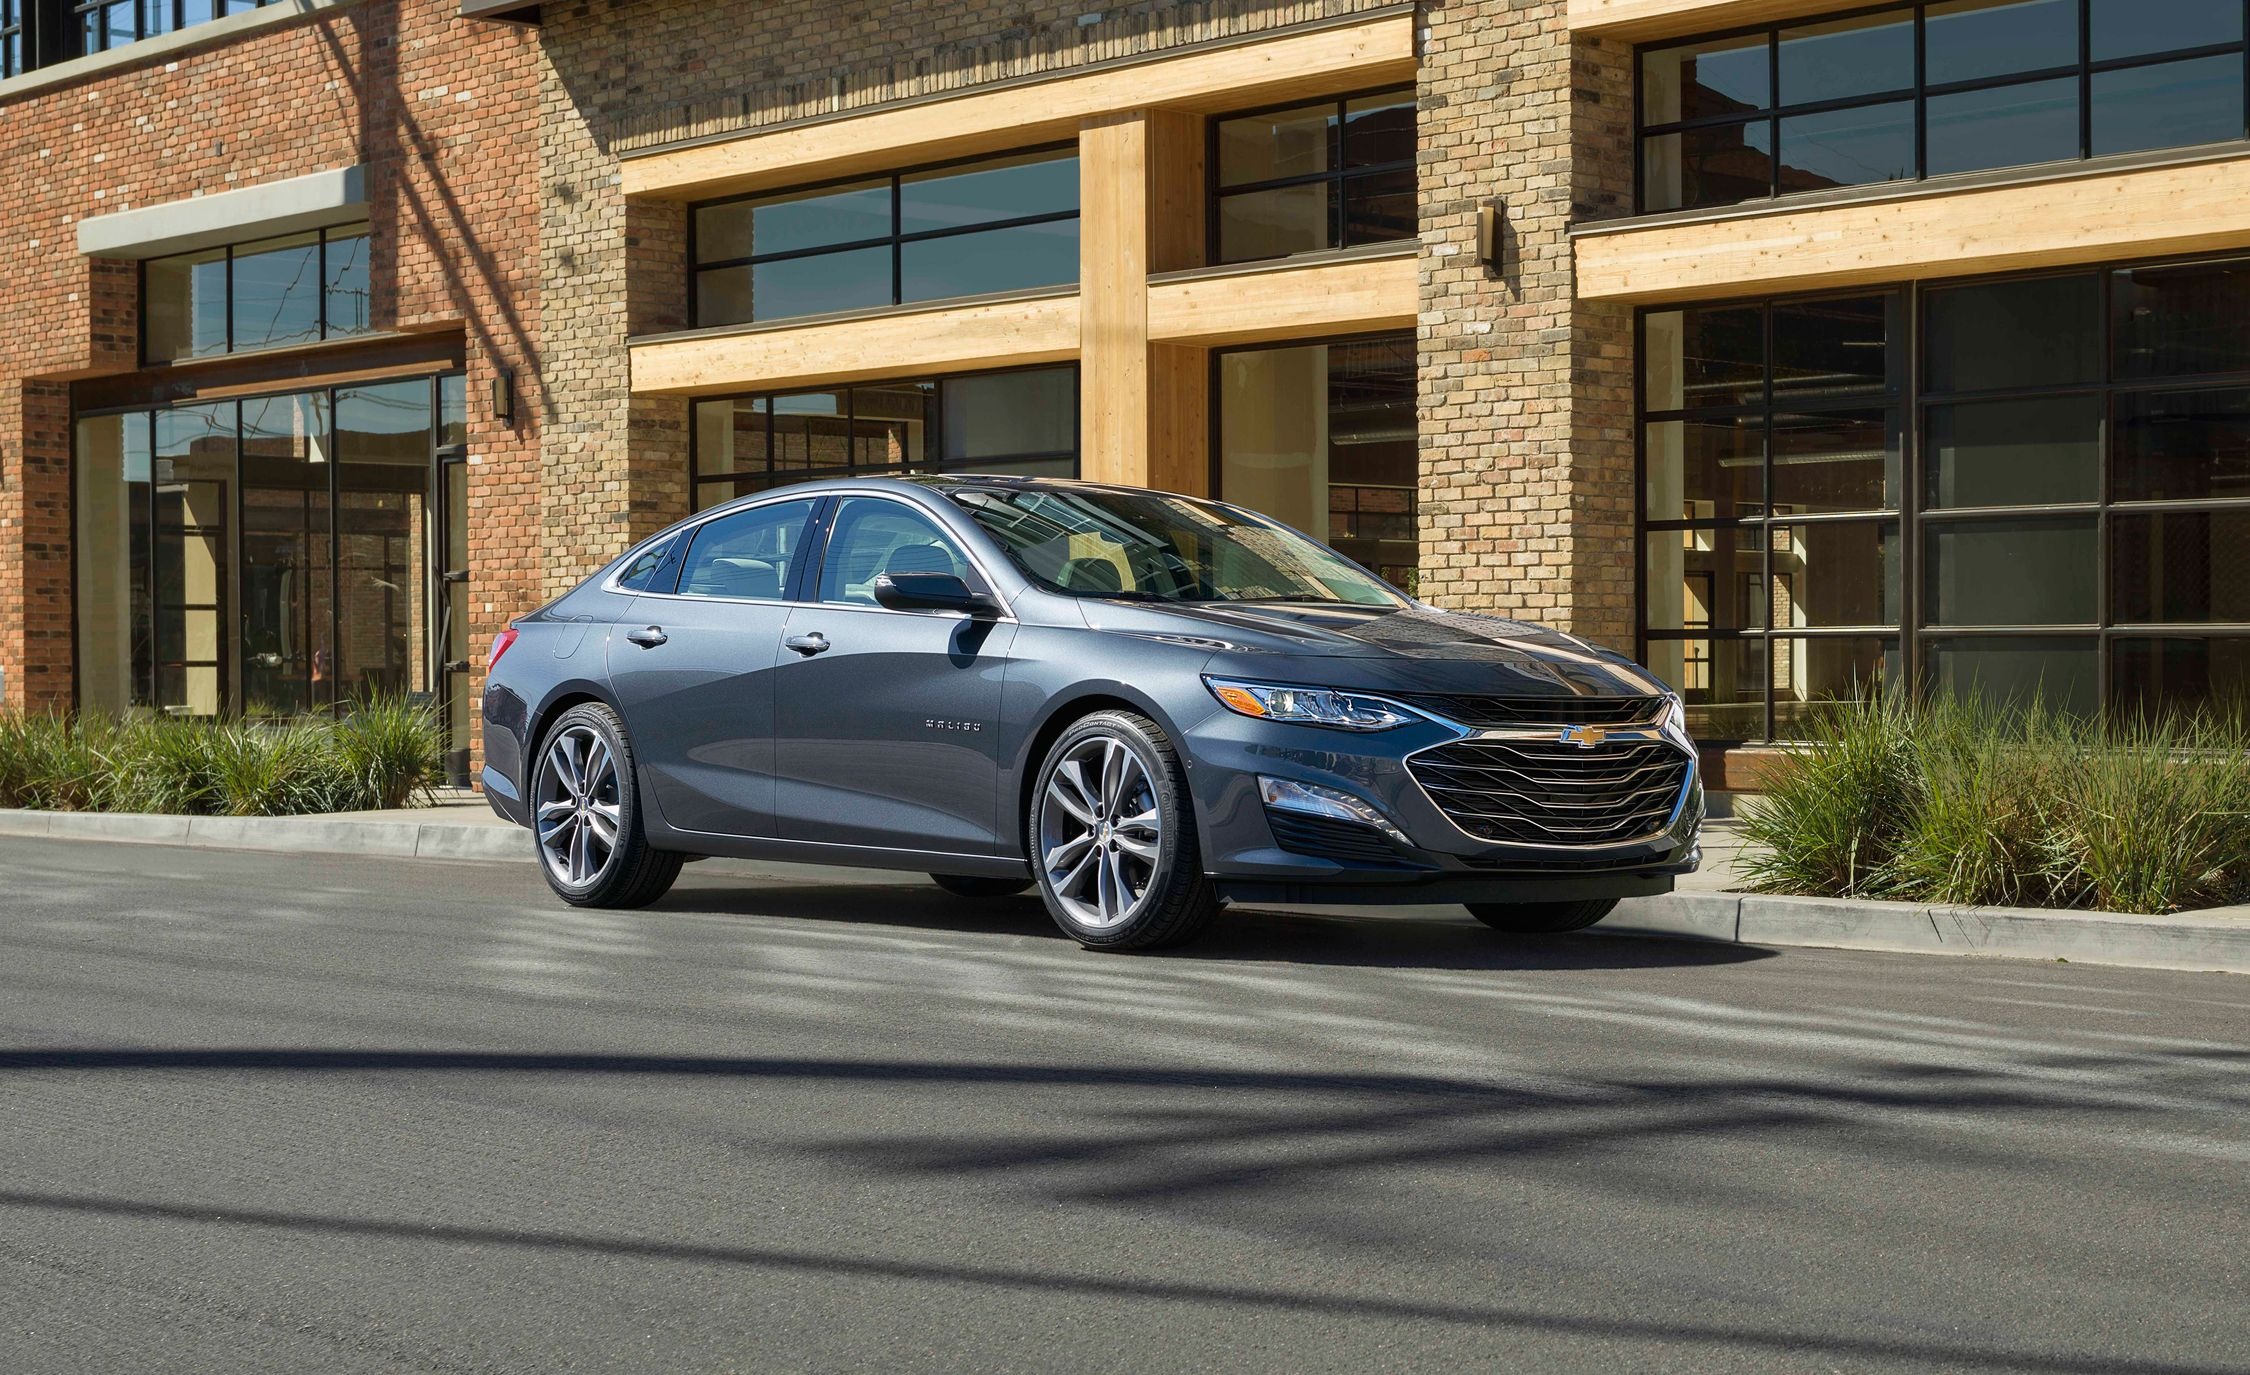 2018 Chevrolet Malibu 1 5t Test Skip The Extra E Review Car And Driver